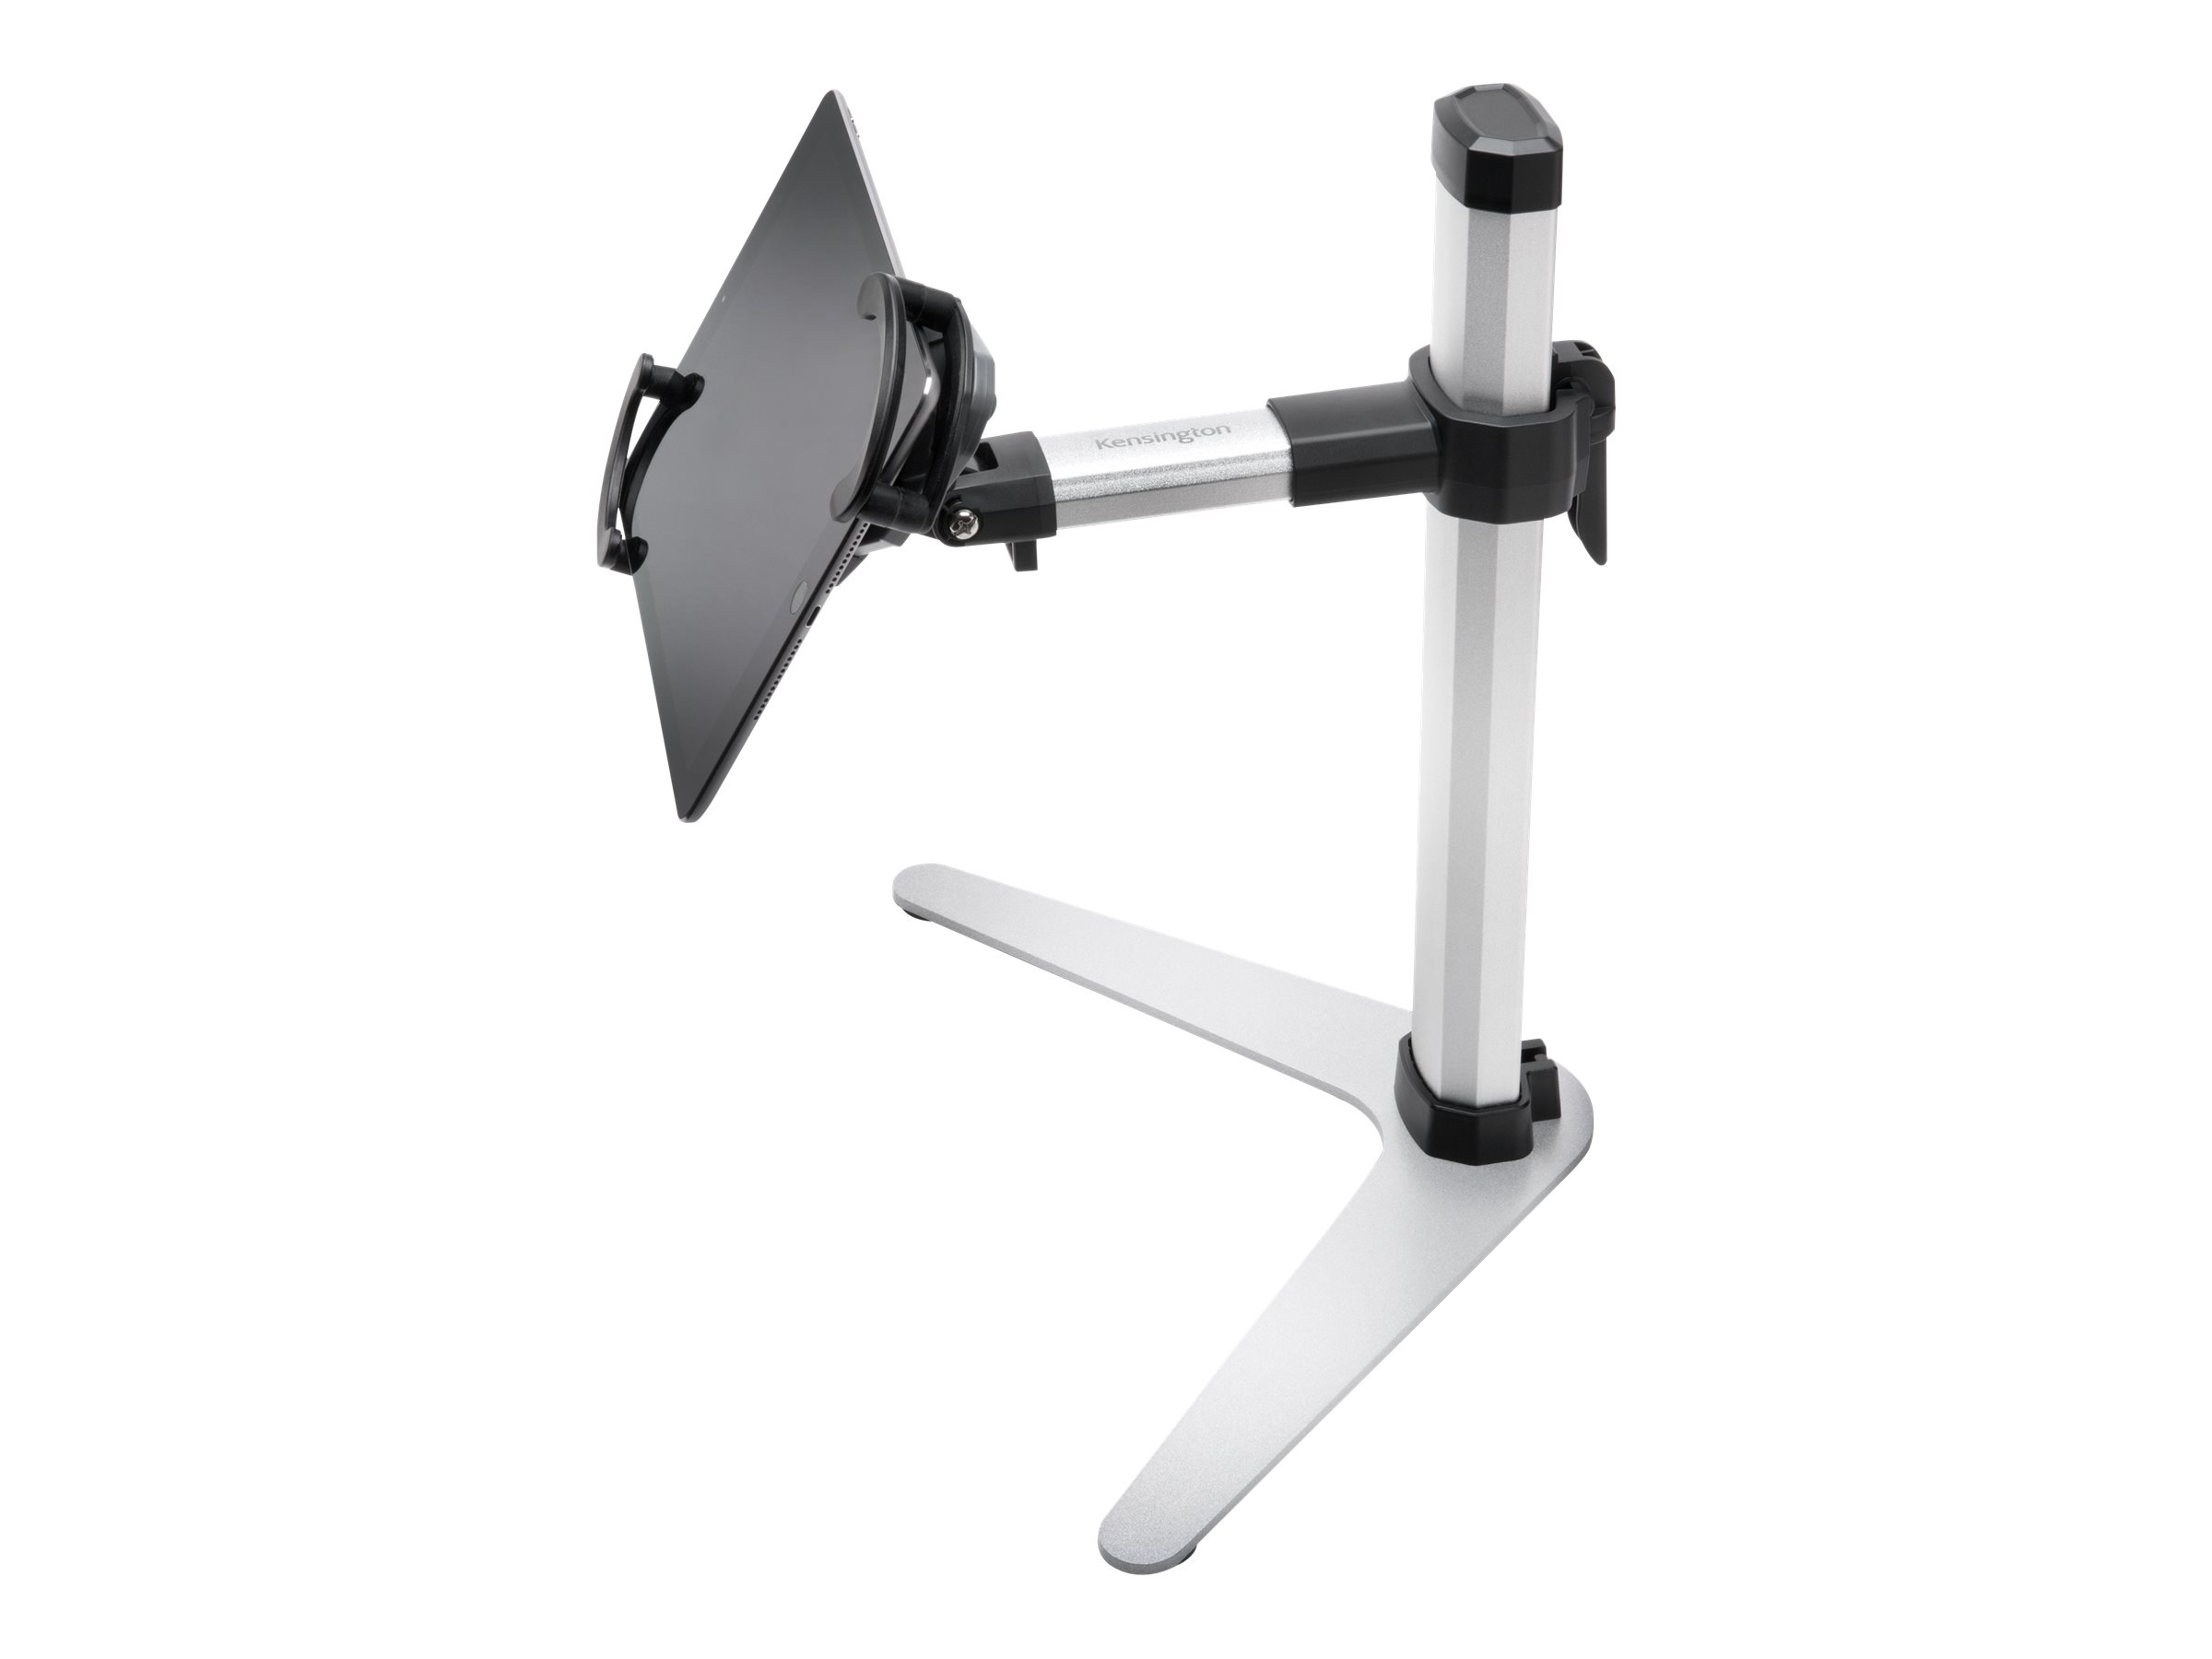 Kensington Tablet Projection Stand - stand